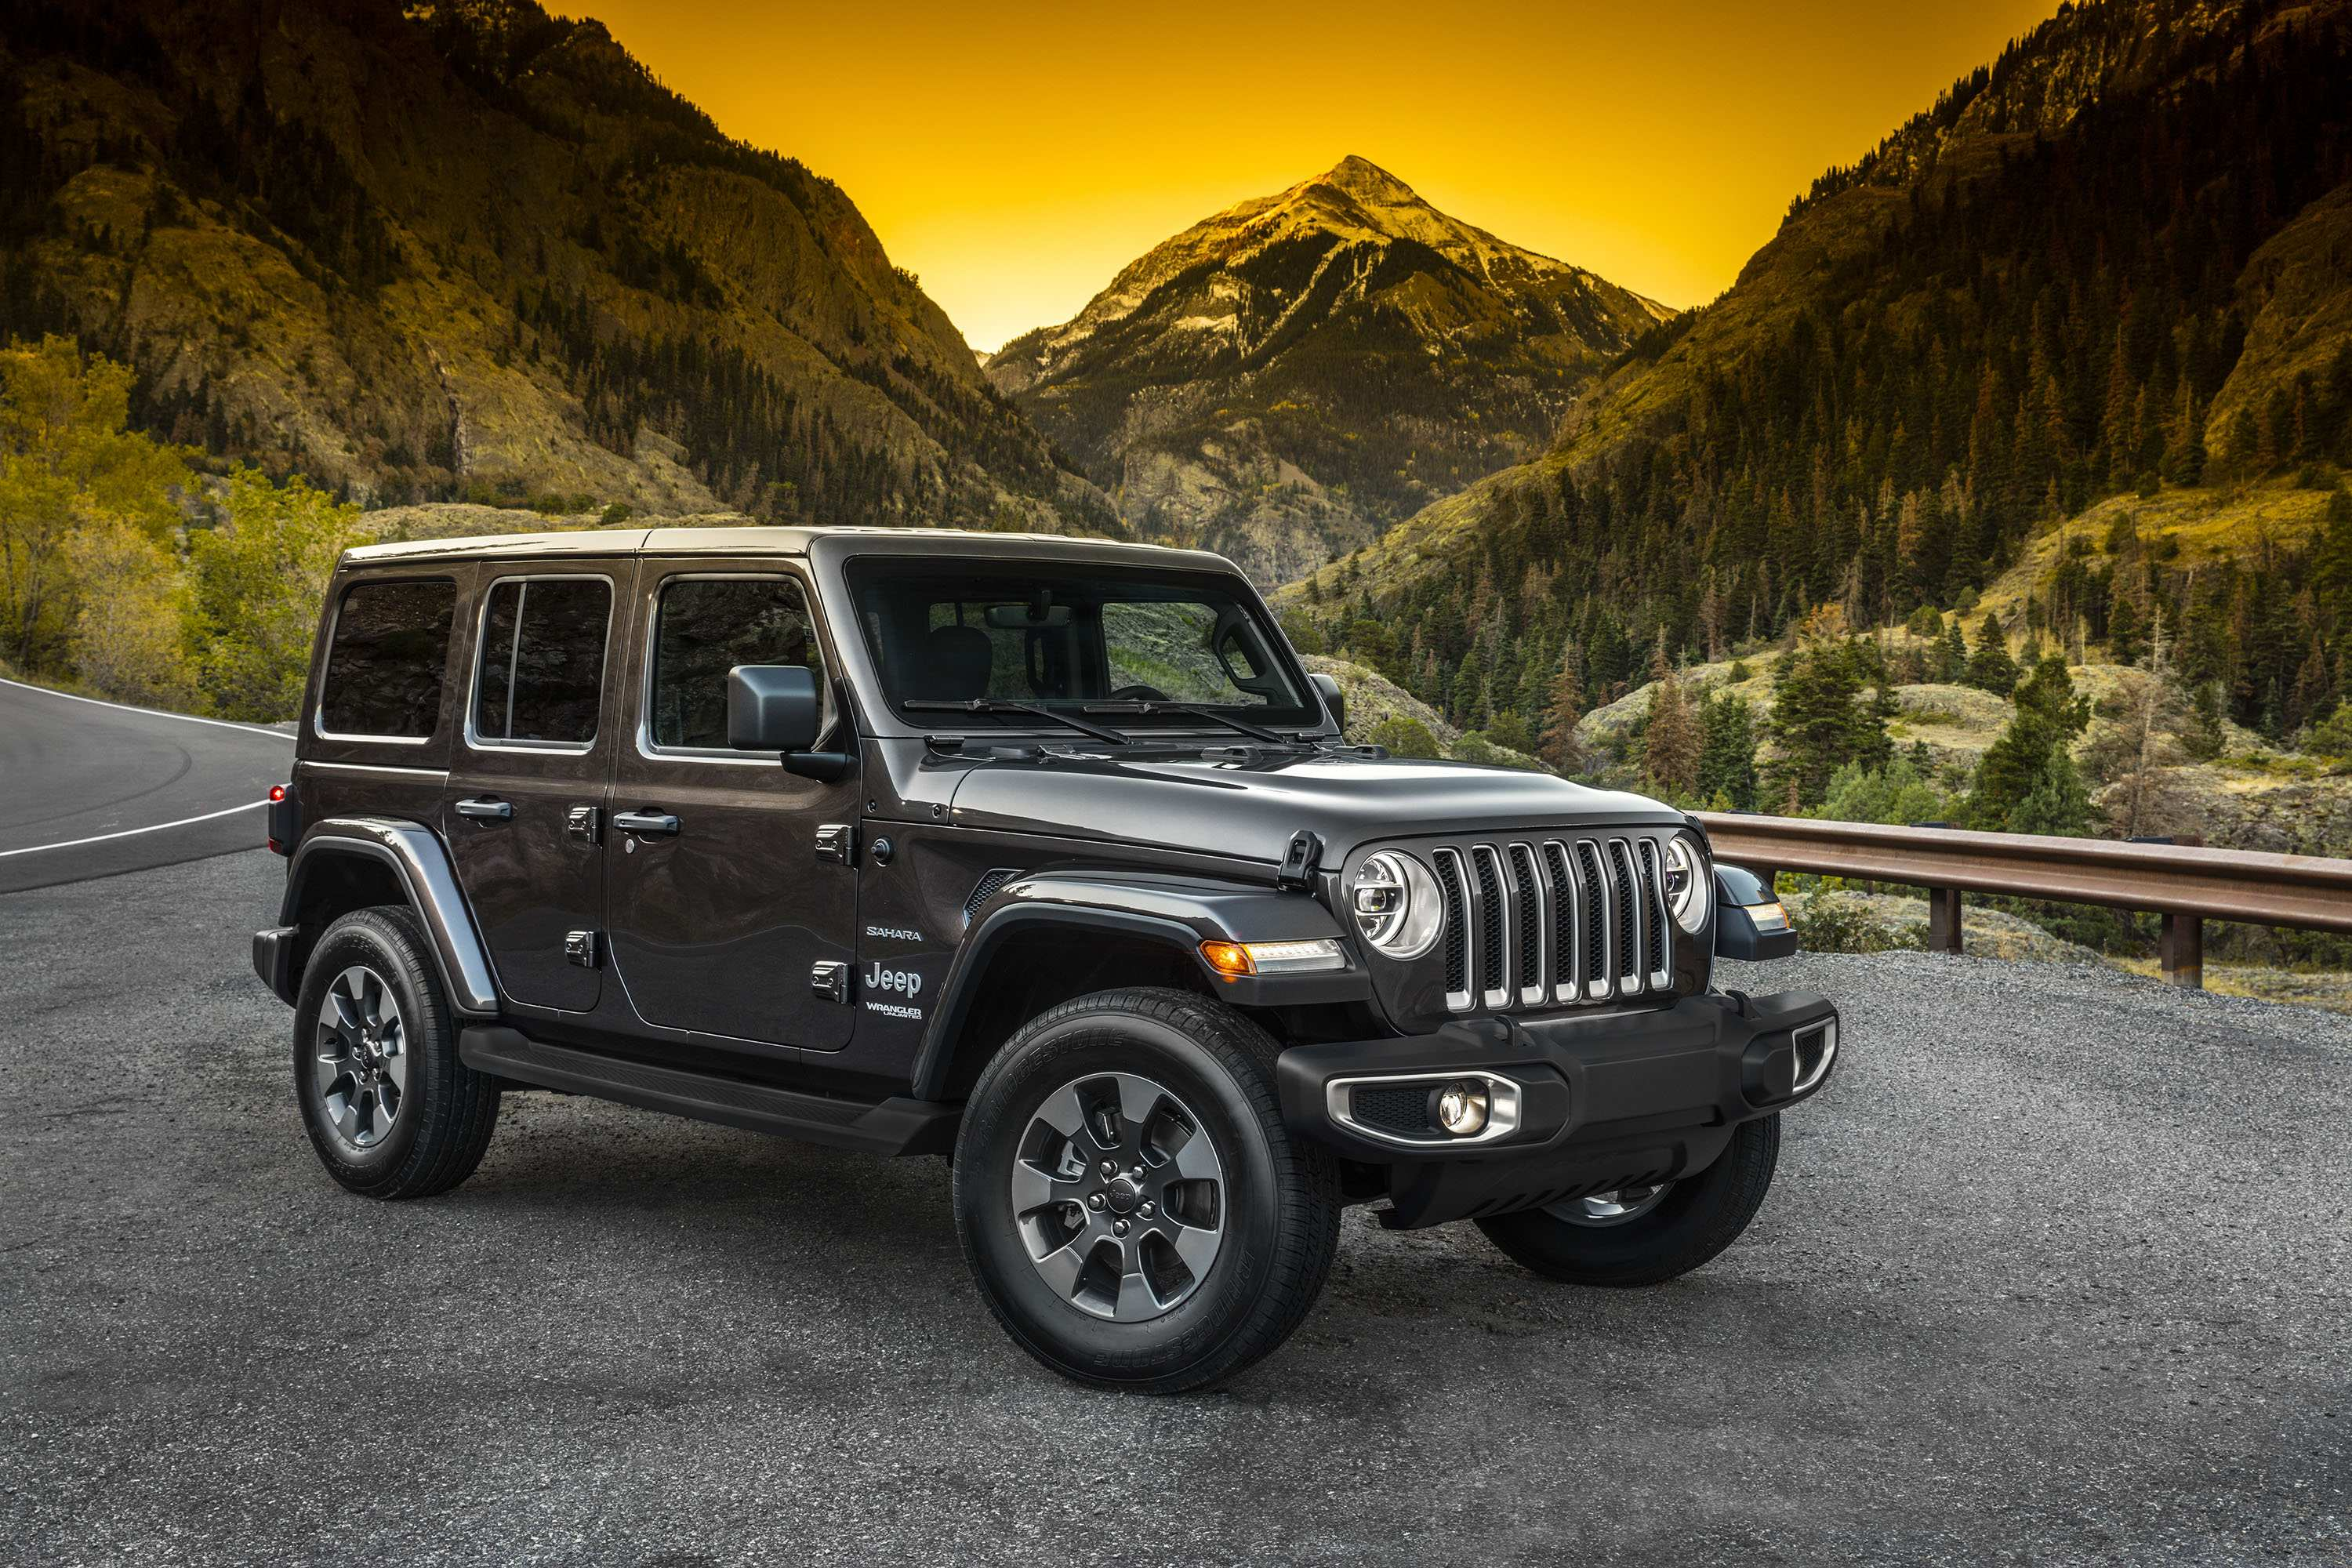 82 Concept of Jeep Hybrid 2020 New Concept with Jeep Hybrid 2020